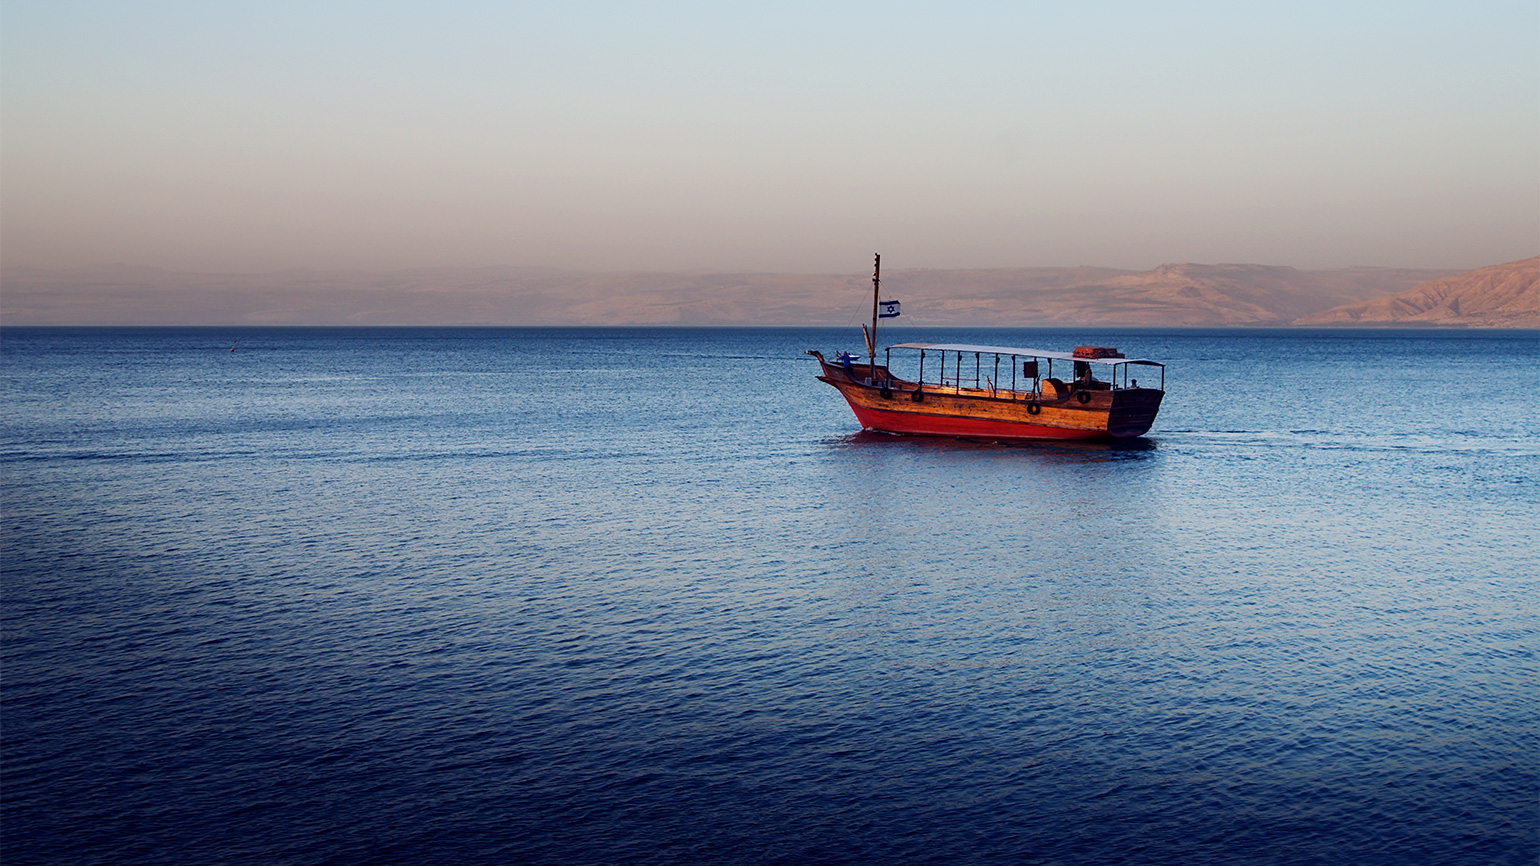 A fishing boat on the sea of Galilee